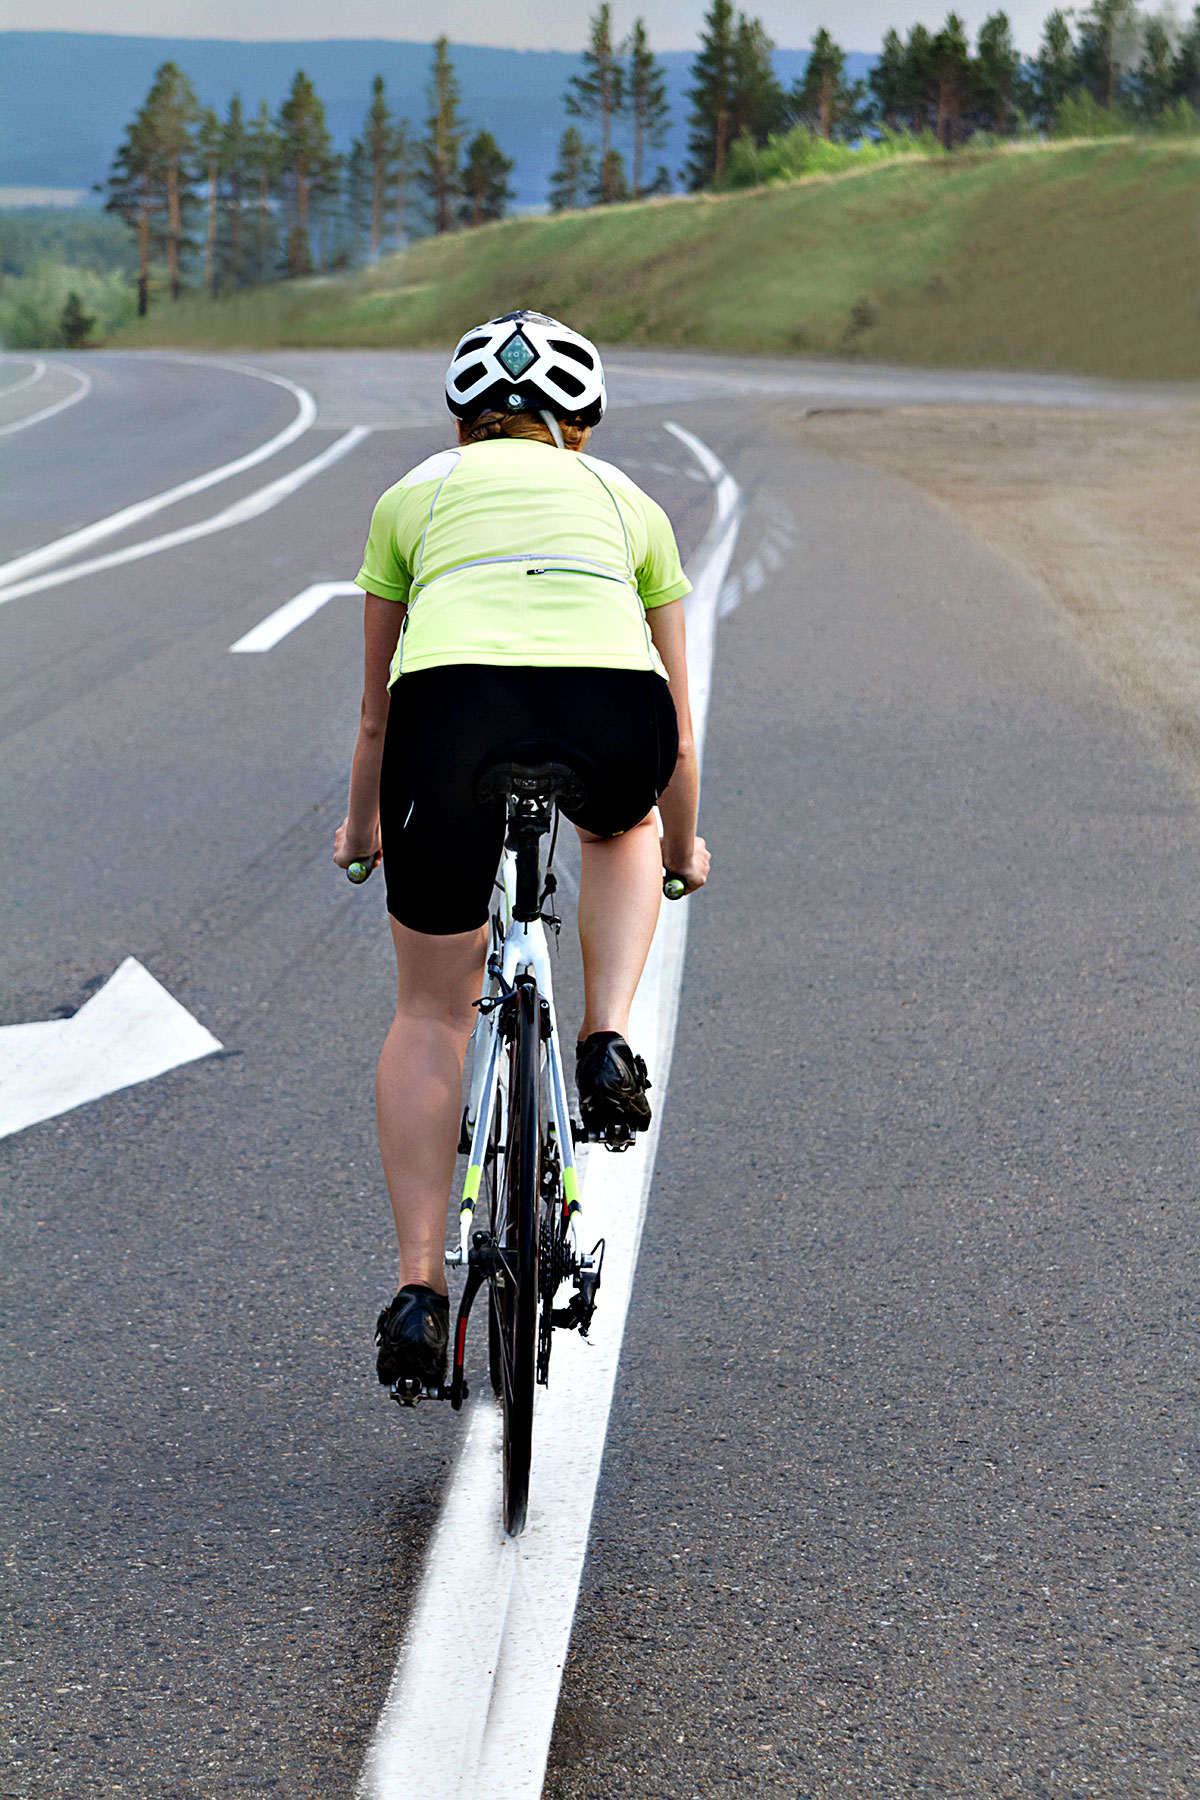 Cyclist on road shoulder